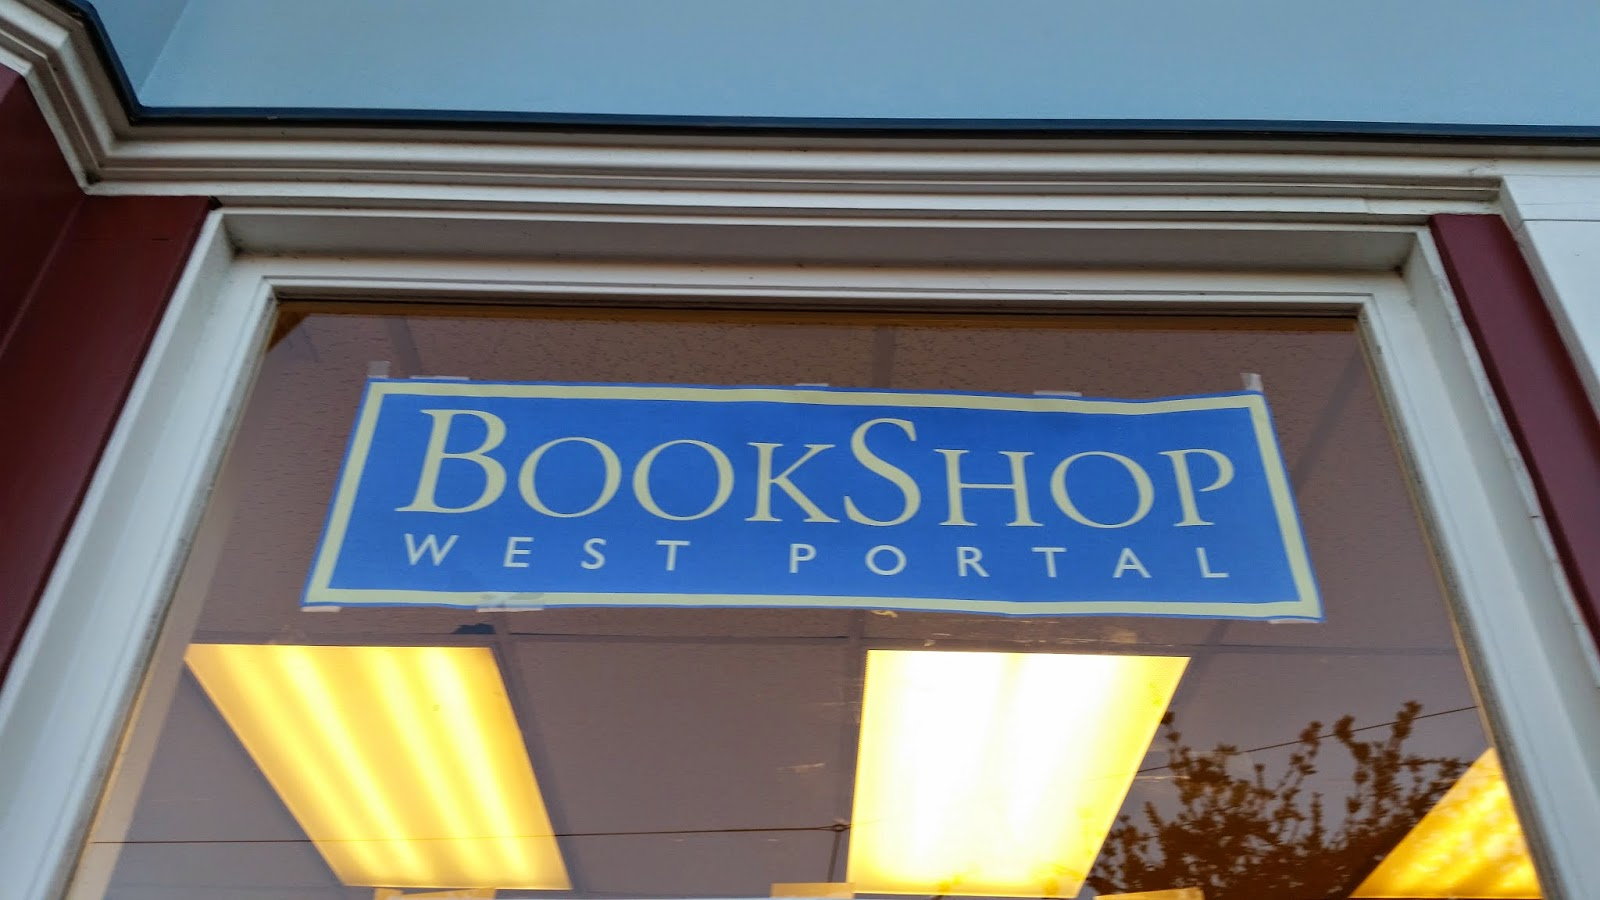 Residents flock to BookShop West Portal not only for books, but for literary-themed gift items and events such as book club meetings and knitting classes.